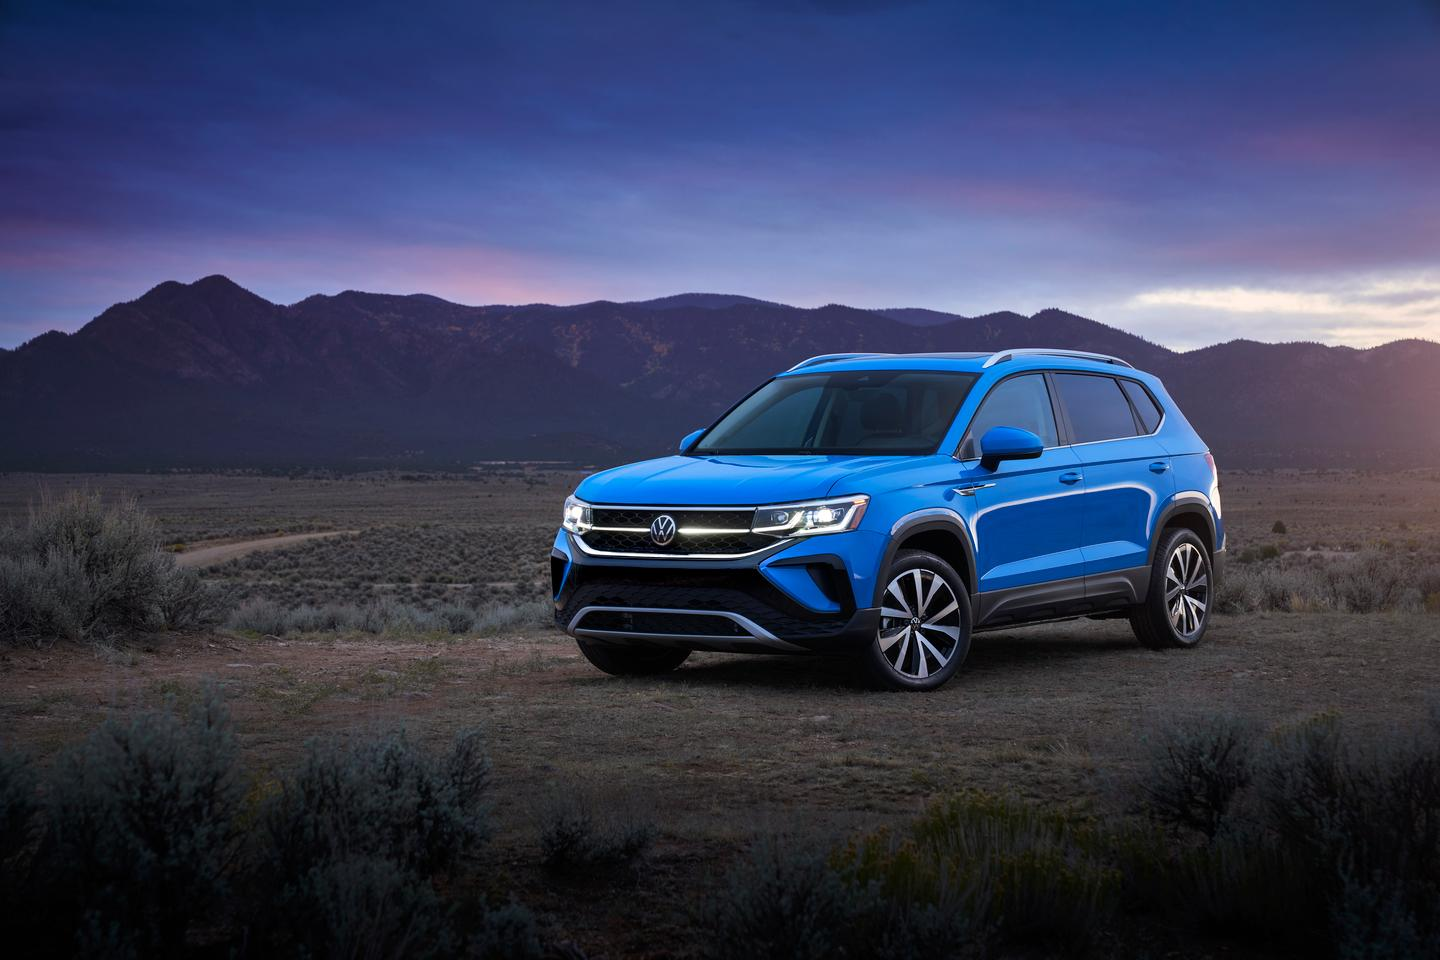 Volkswagen brings the new Taos to the entry point of its US SUV lineup